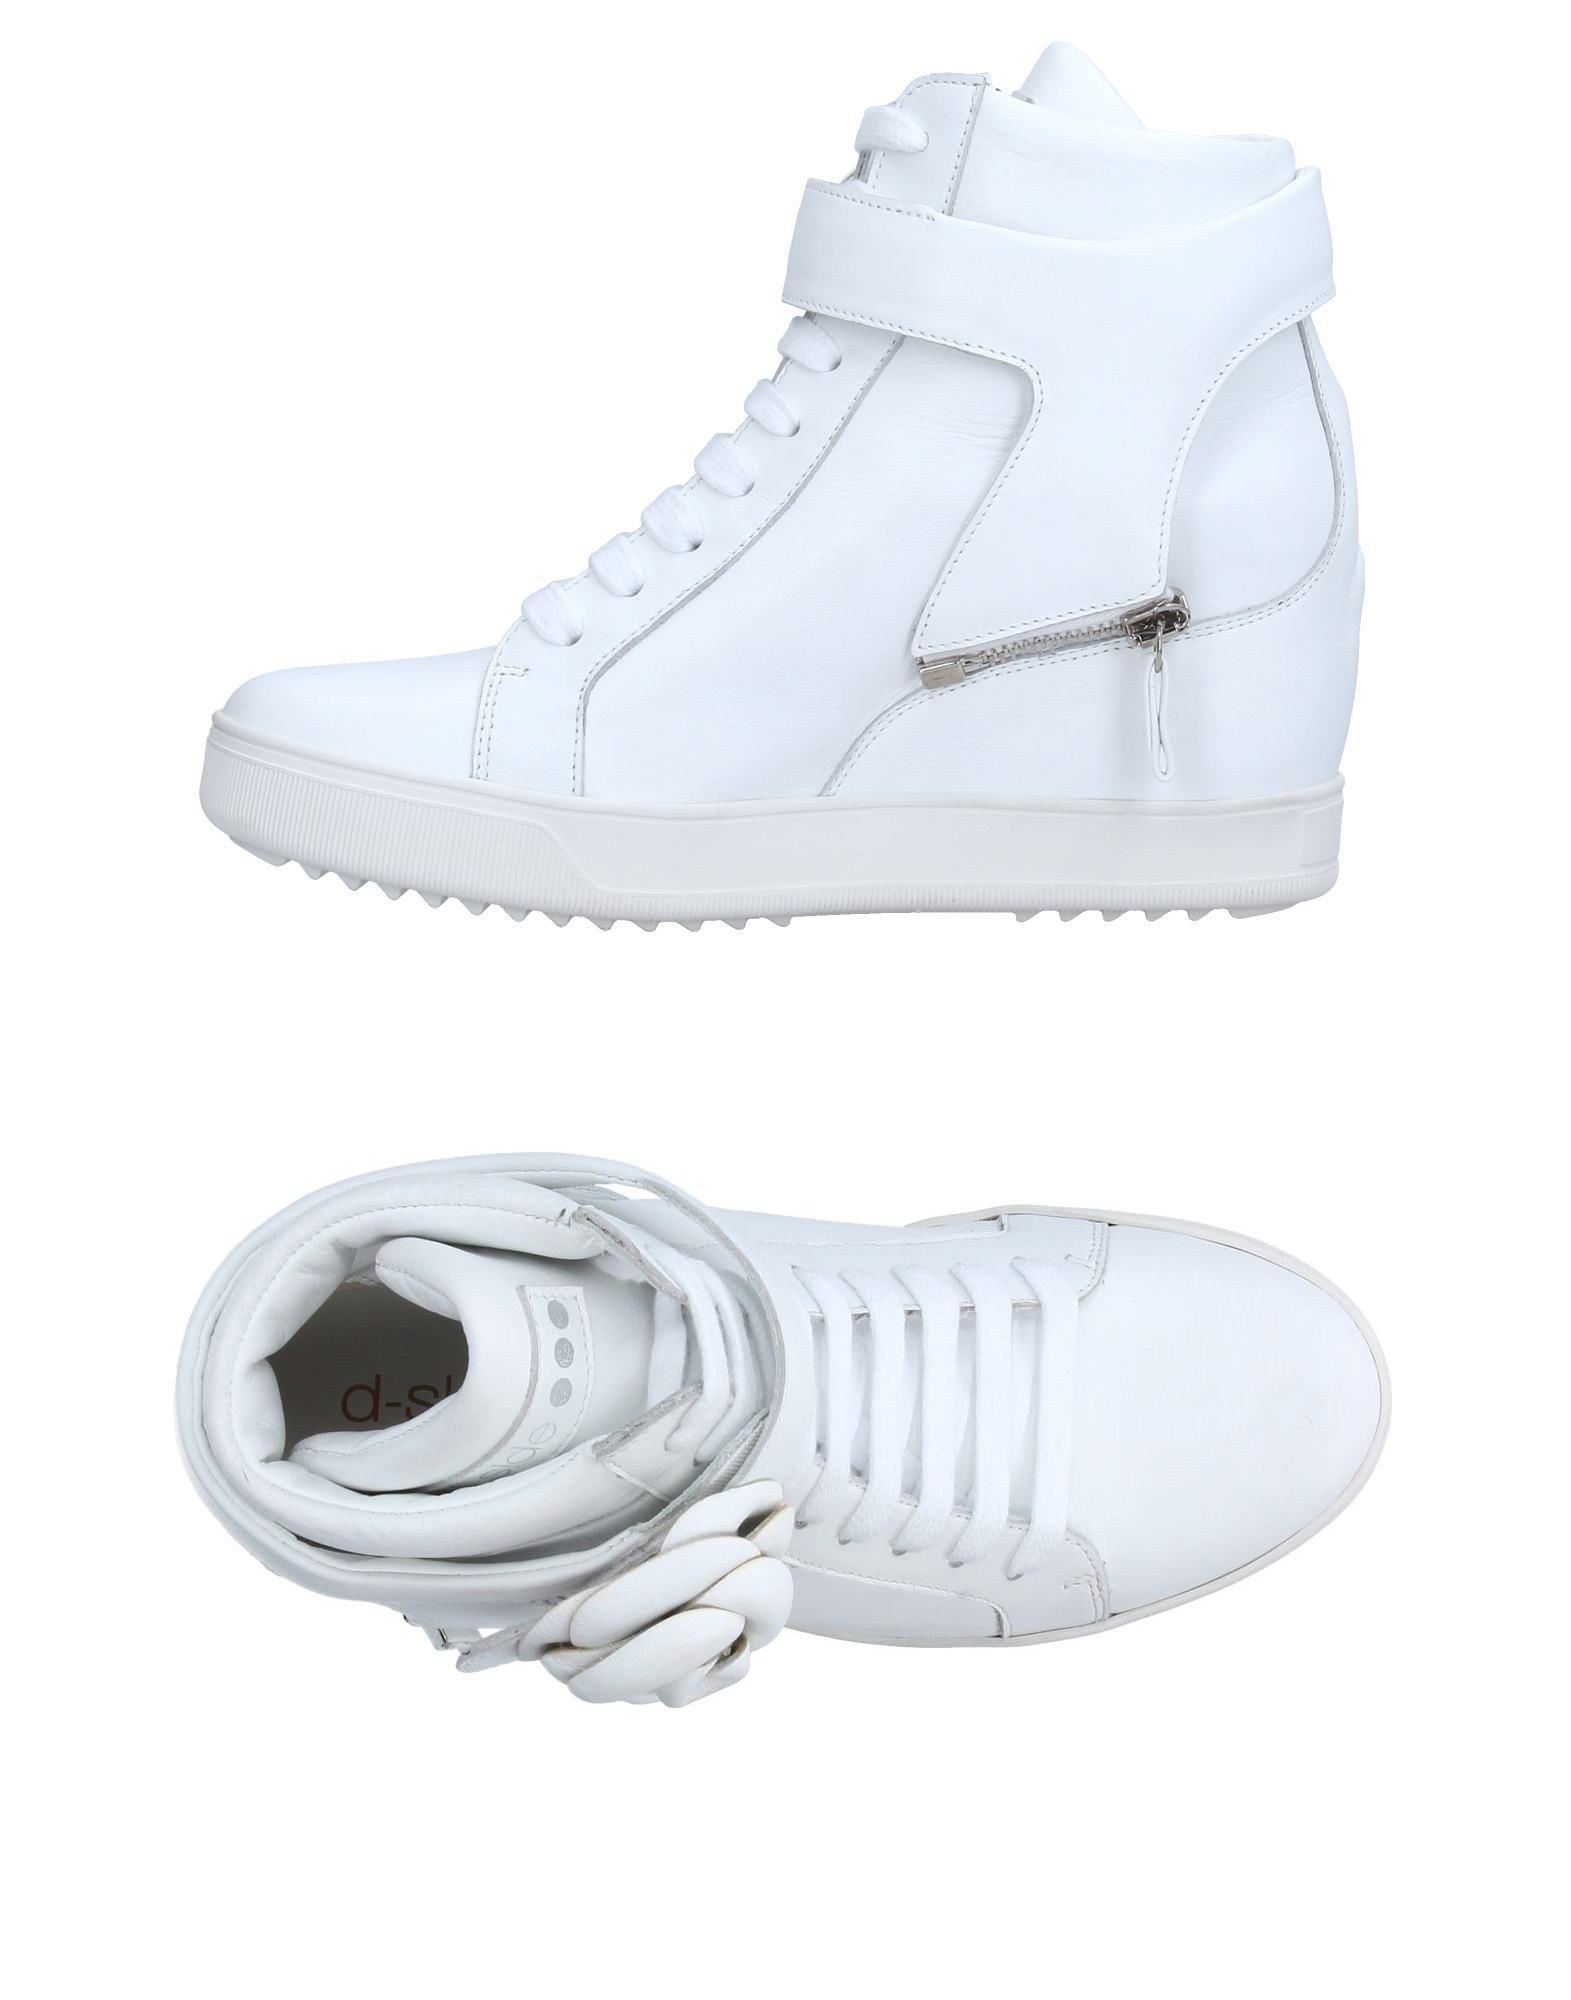 Baskets D-S!De Femme - casual Baskets D-S!De Blanc Chaussures casual - sauvages 81f86d